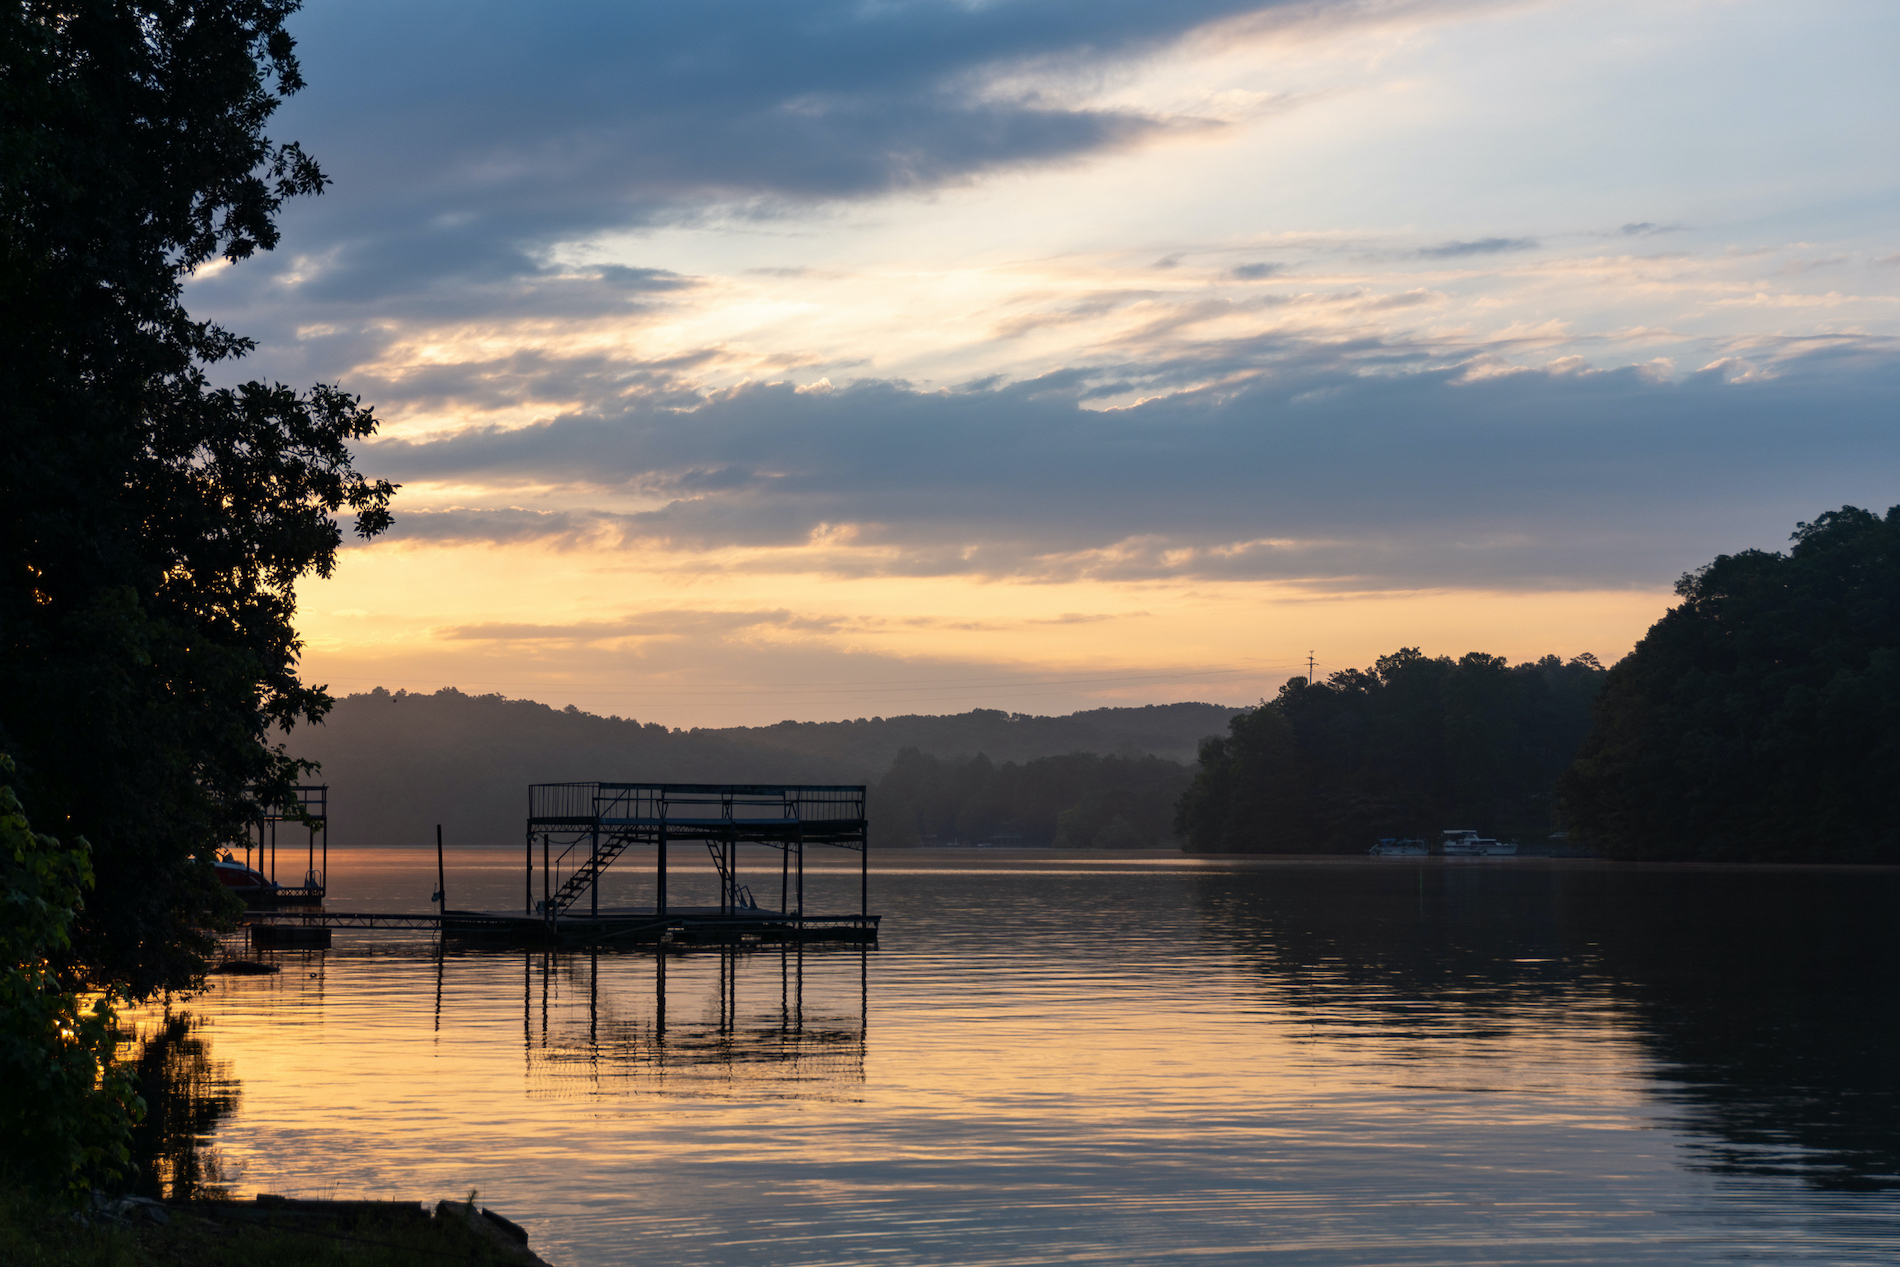 Dawn over Lake Lanier; silhouette of a dock and trees on a lake under a purple and orange sky with clouds; landscape view